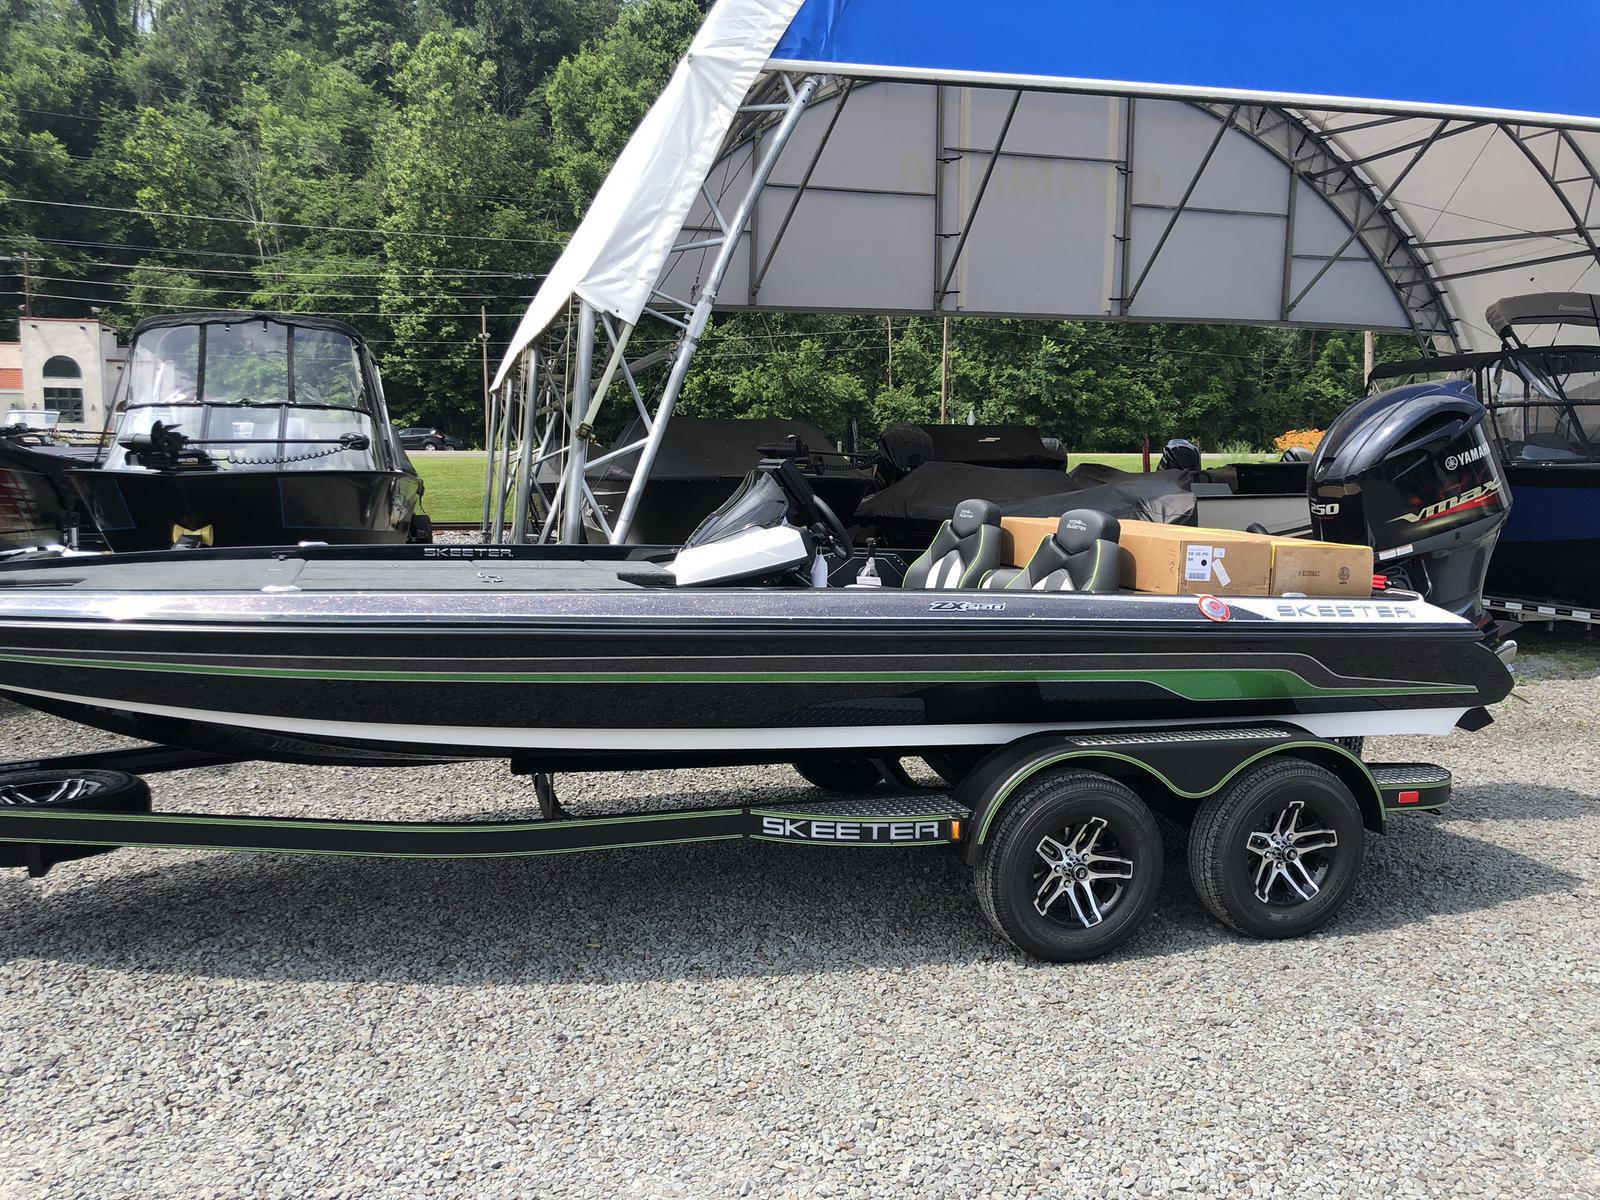 Skeeter bass boats for sale - Page 4 of 19 - boats.com